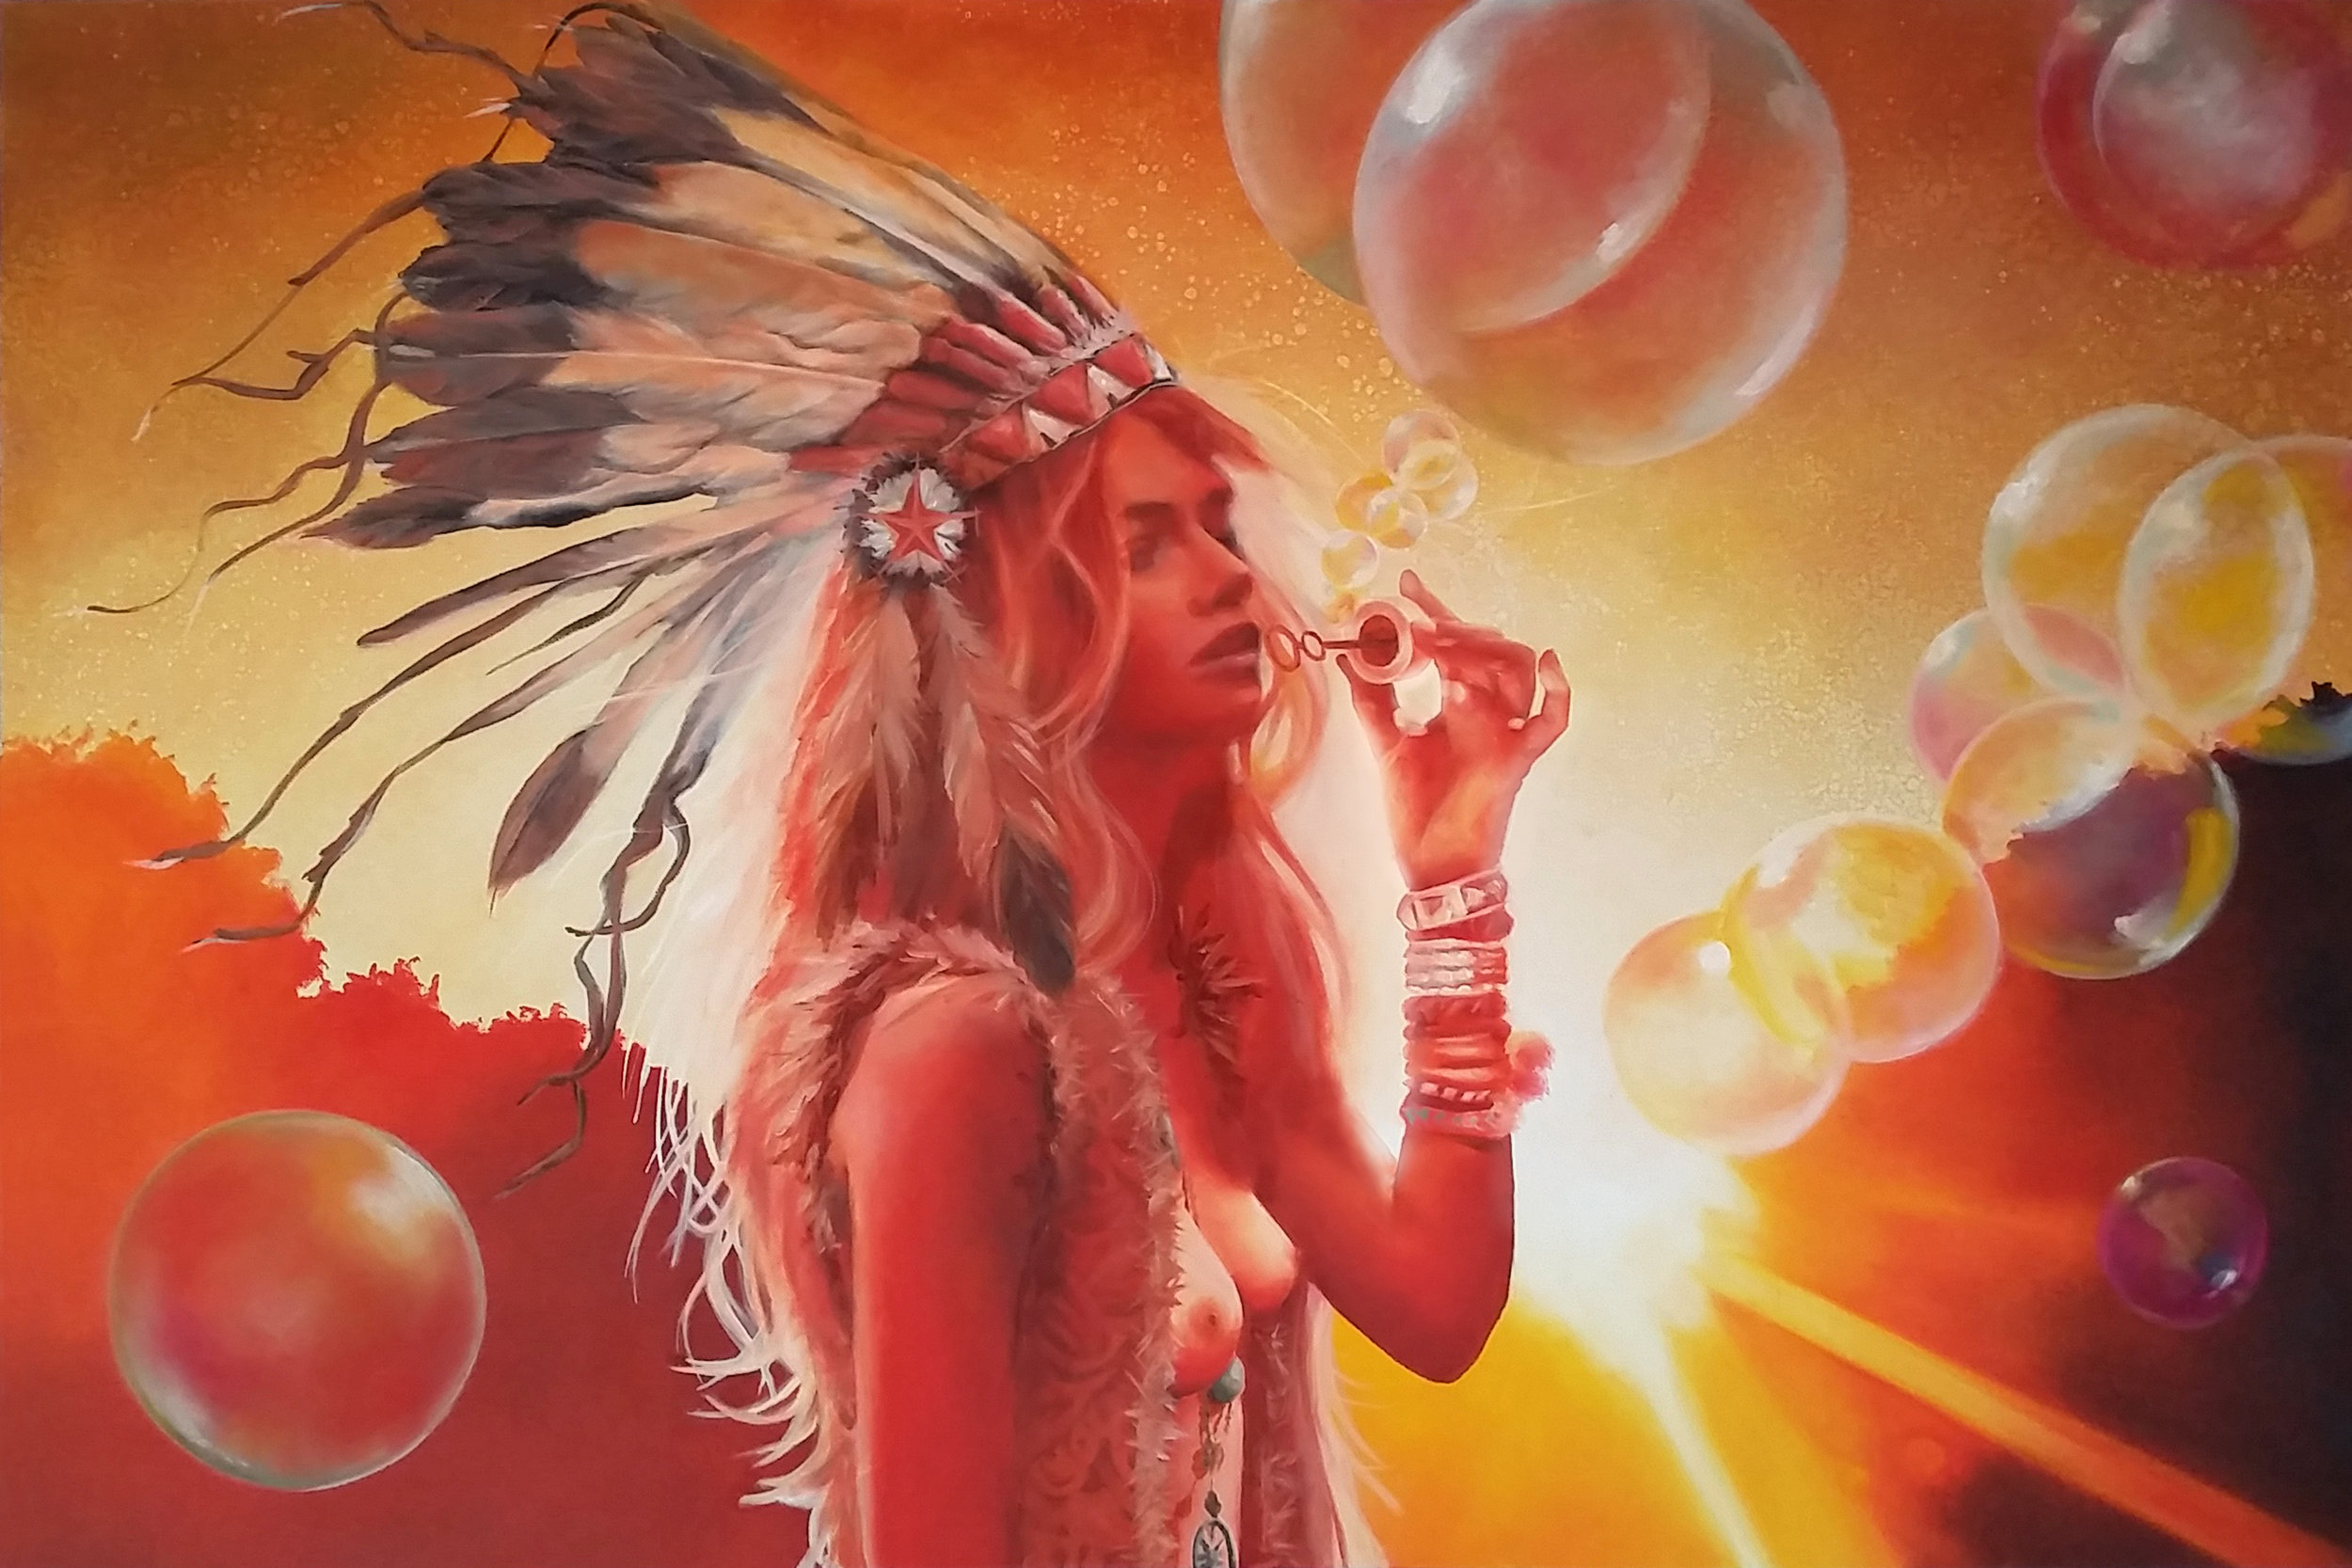 """""""Lost in the Light"""", 2015, Ginger Del Rey  oil on canvas 24"""" x 36"""" x .6""""  $2500  The inspiration for this painting was a particularly vivid daydream I had of walking through the mountains in Sedona, blowing bubbles and watching the sun slowly drip beneath the horizon, shooting out dusty white hot beams of light in every direction. This is one my favorite paintings because, since I was a child growing up in Wisconsin, I've been fascinated with all things Native American. I was particularly drawn to the beauty of the headdress, and while I'm very cognizant that the war bonnet is not worn by women or worn in casual settings, I wanted to bring a peaceful, light-giving and feminine reclamation to the headdress. I hope that is captured here, nothing but reverence and admiration is intended."""